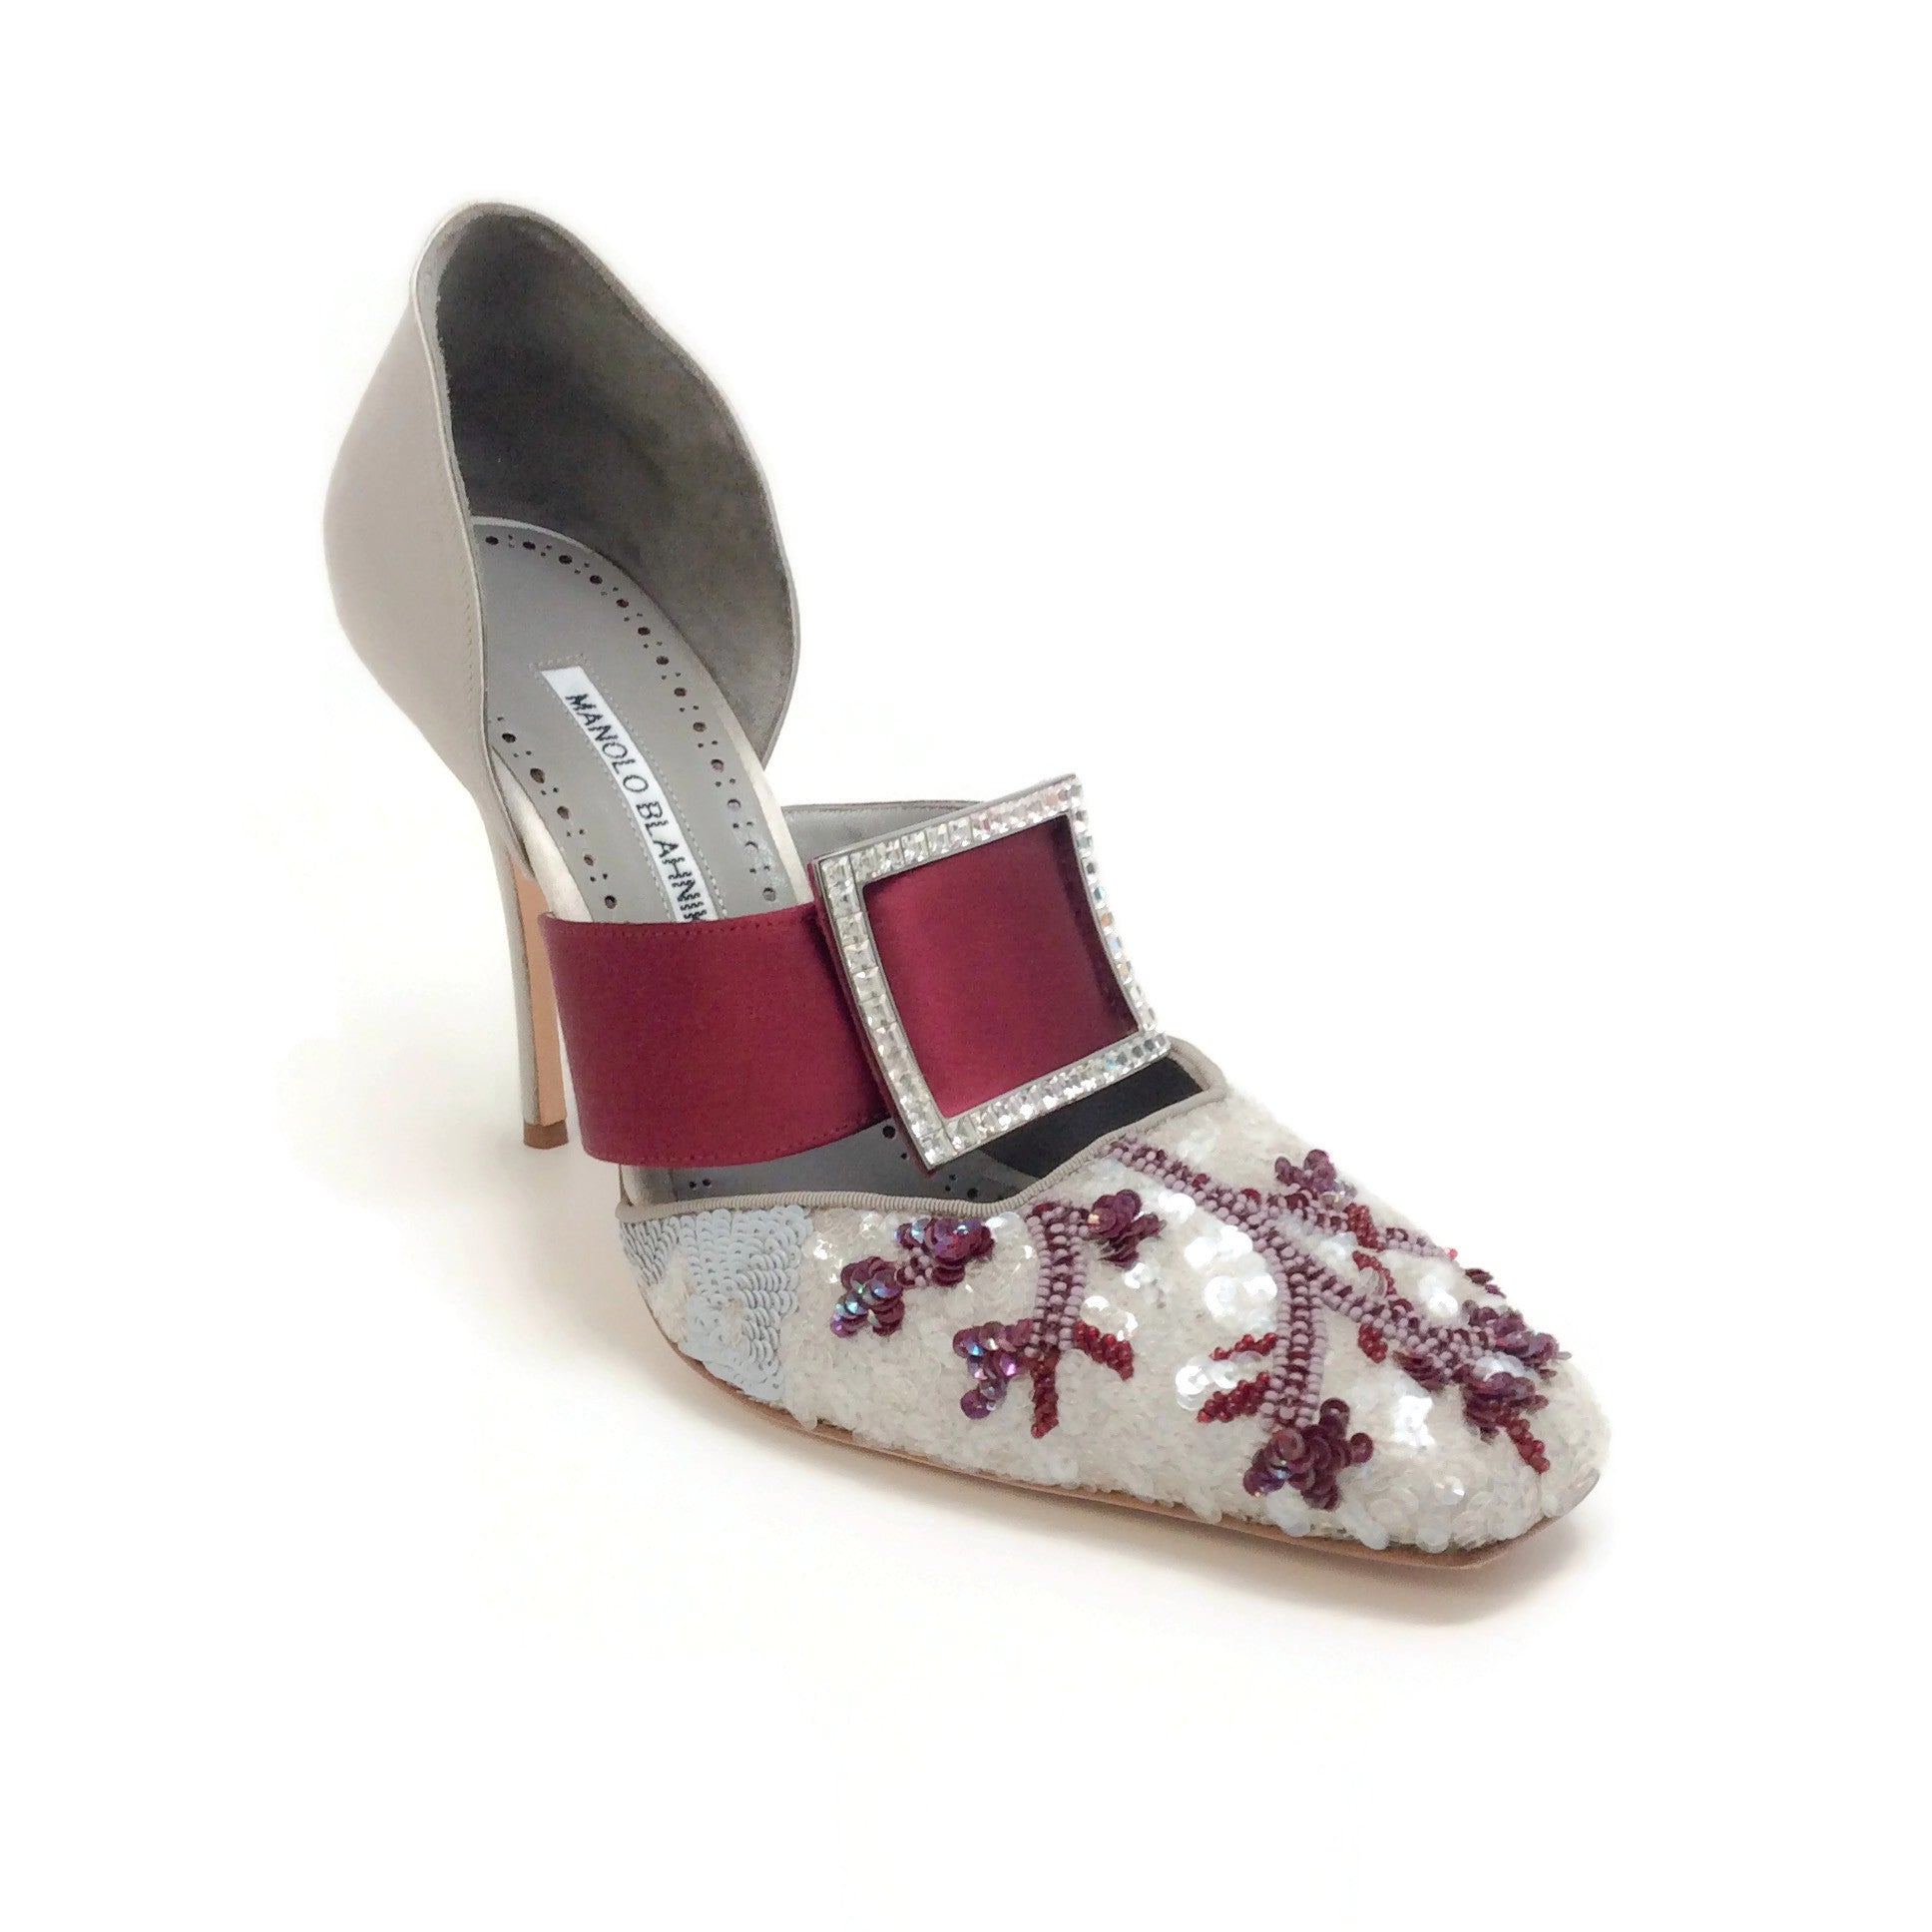 Manolo Blahnik Silver / Oxblood Vasliev Buckle Pumps